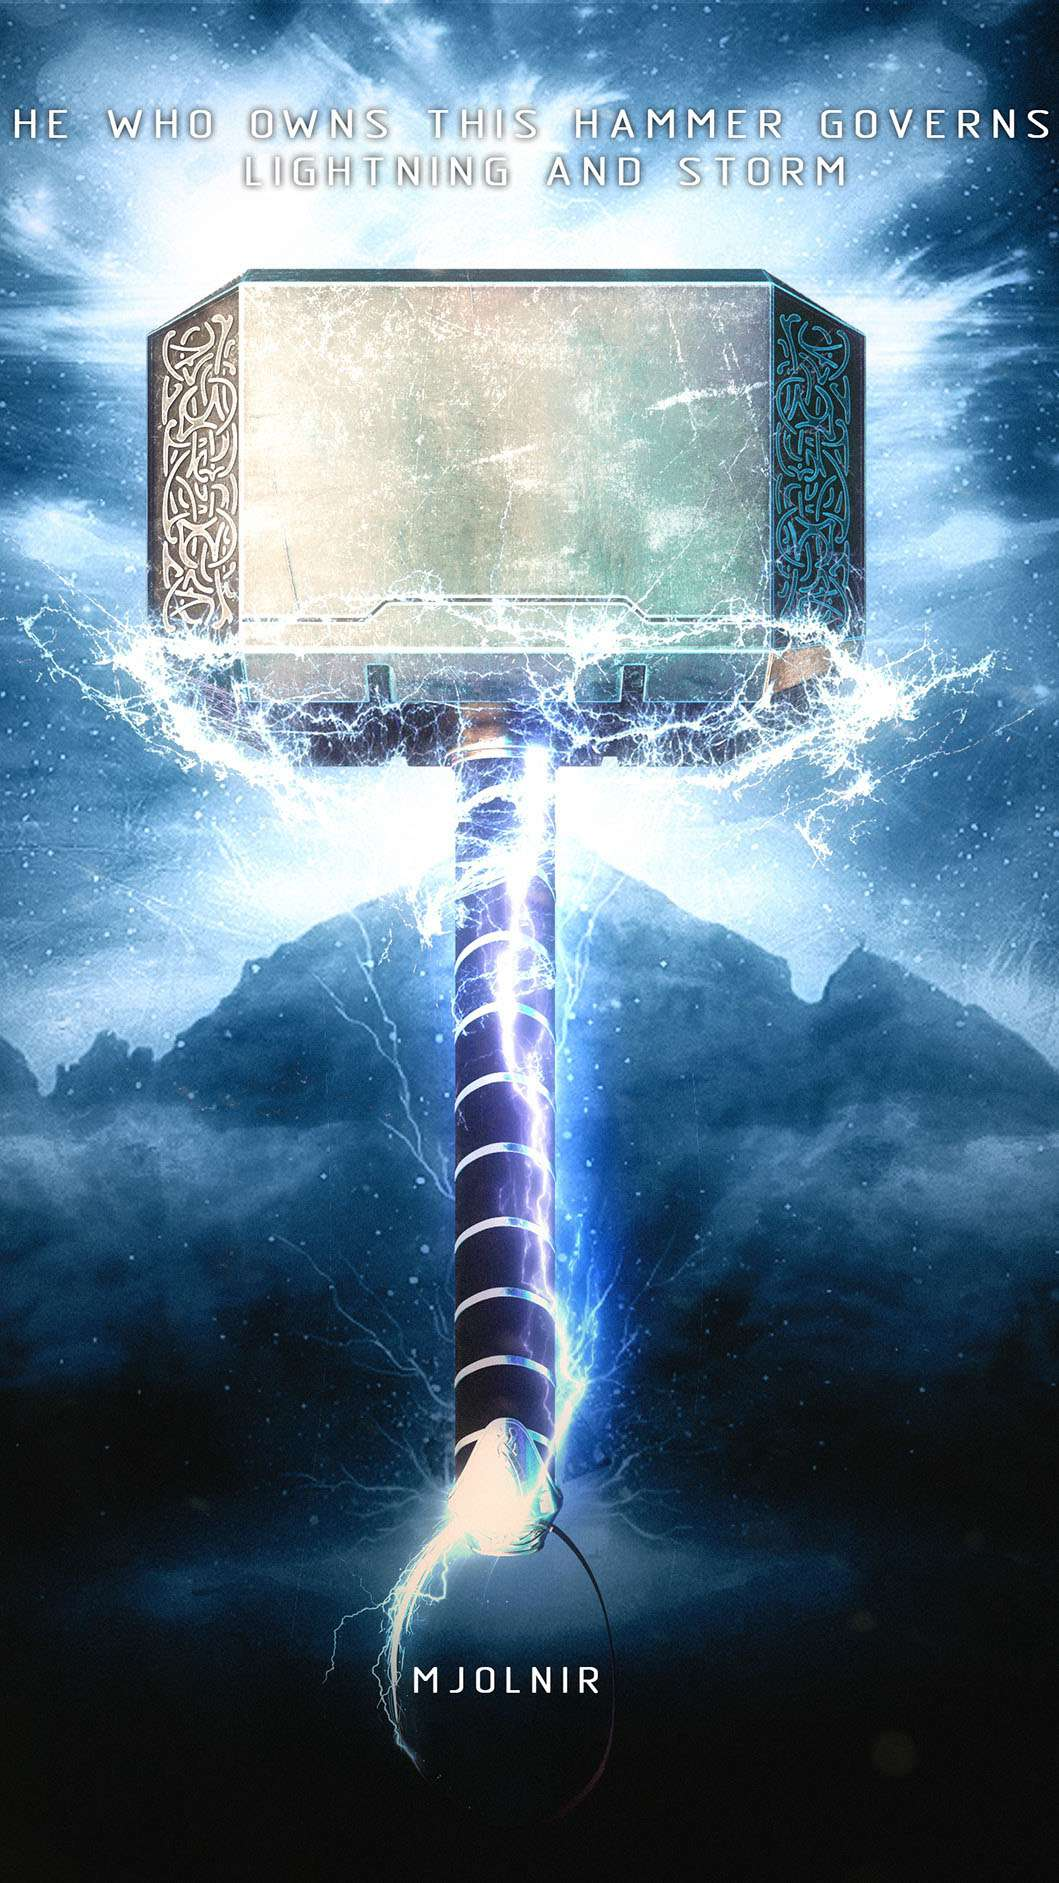 Cute Wallpapers For Desktop With Quotes The Mjolnir Iphone Wallpaper Iphone Wallpapers